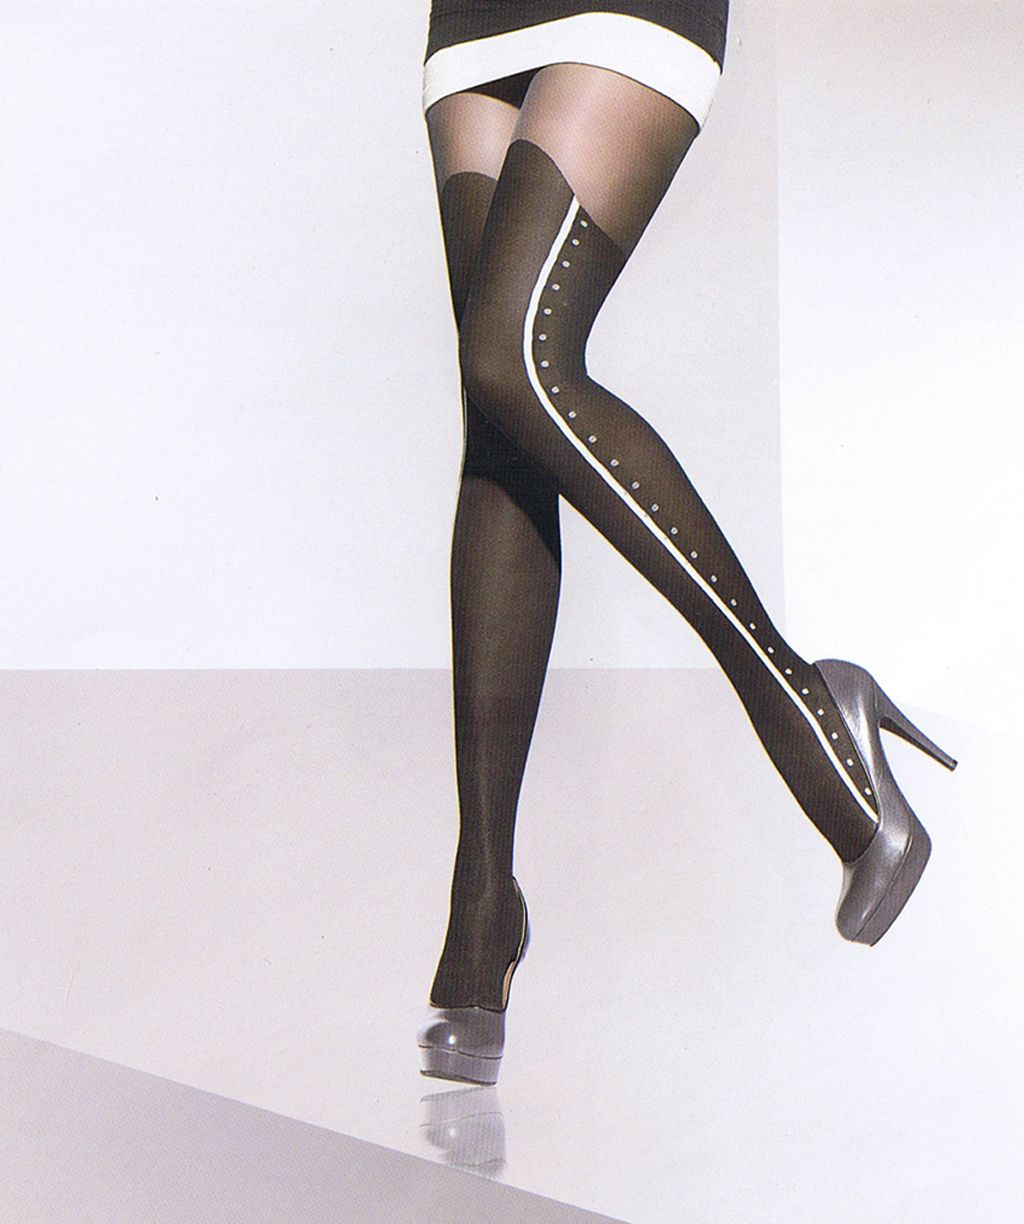 ac49374c444 ... Suspender Tights  MOCK SUSPENDER STOCKINGS-TIGHTS-ADRIAN